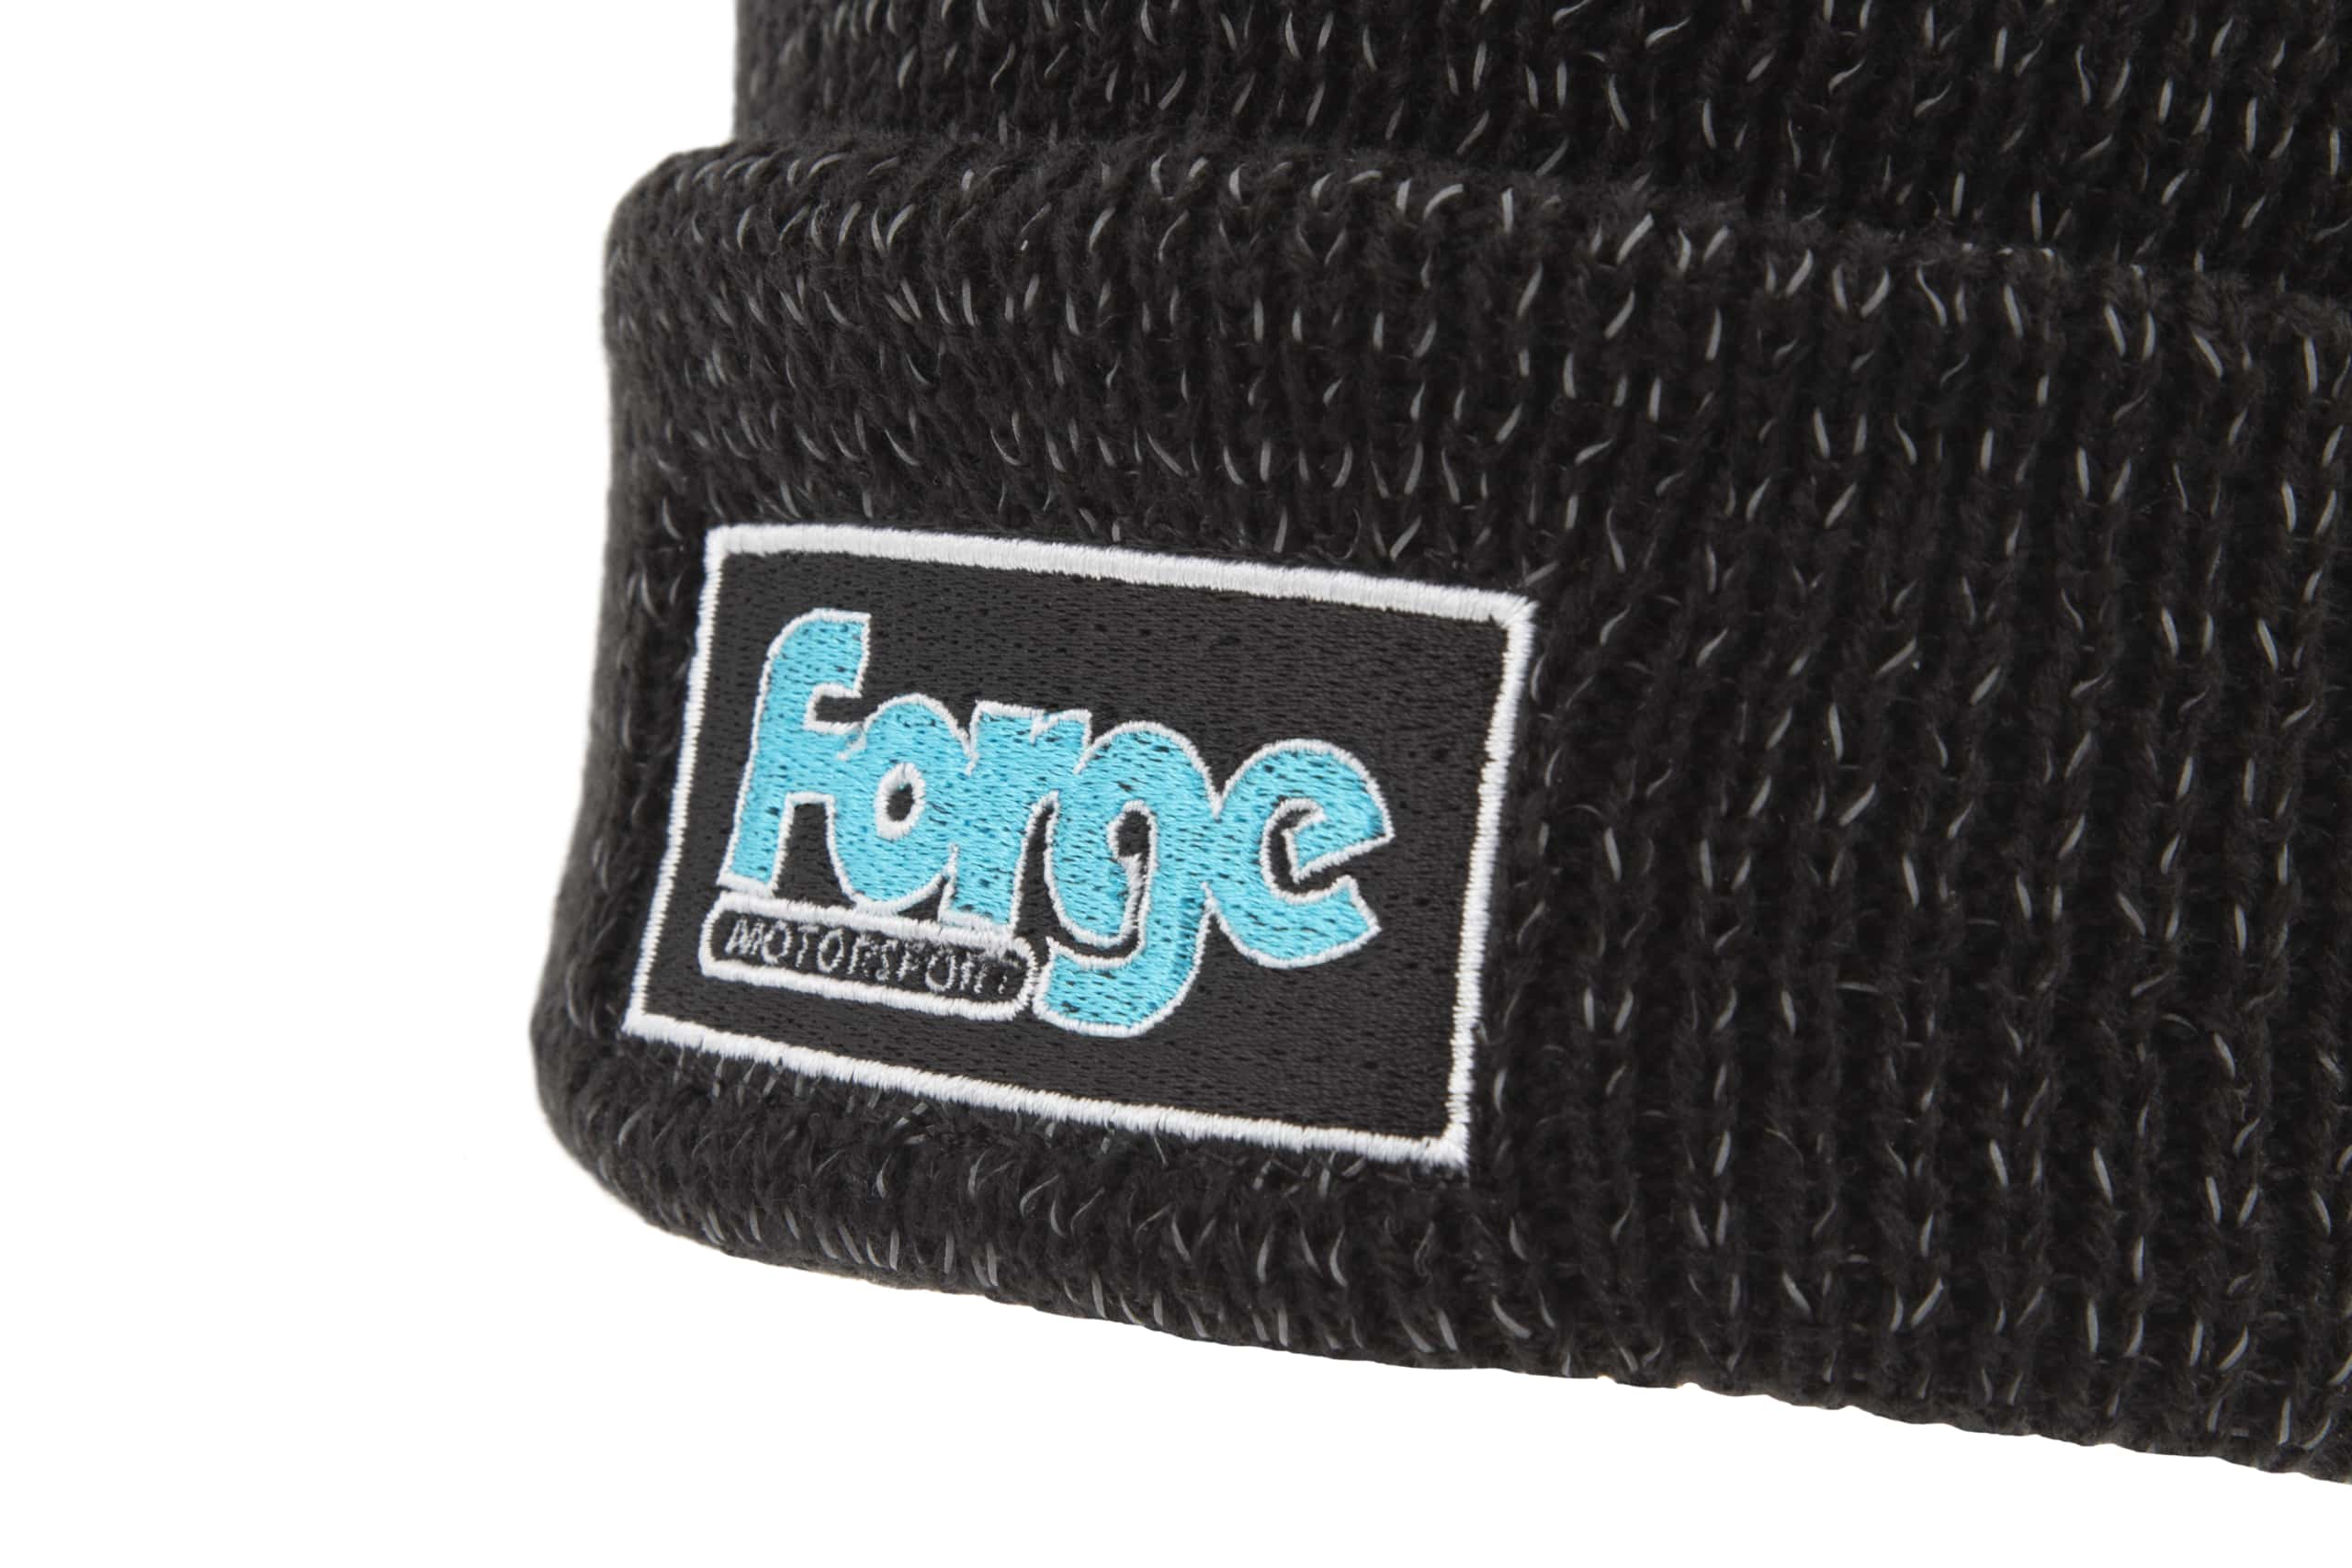 Forge Motorsport Reflective Beanie Hat Woolie Fans Accessory Gift Xmas Birthday Present 2